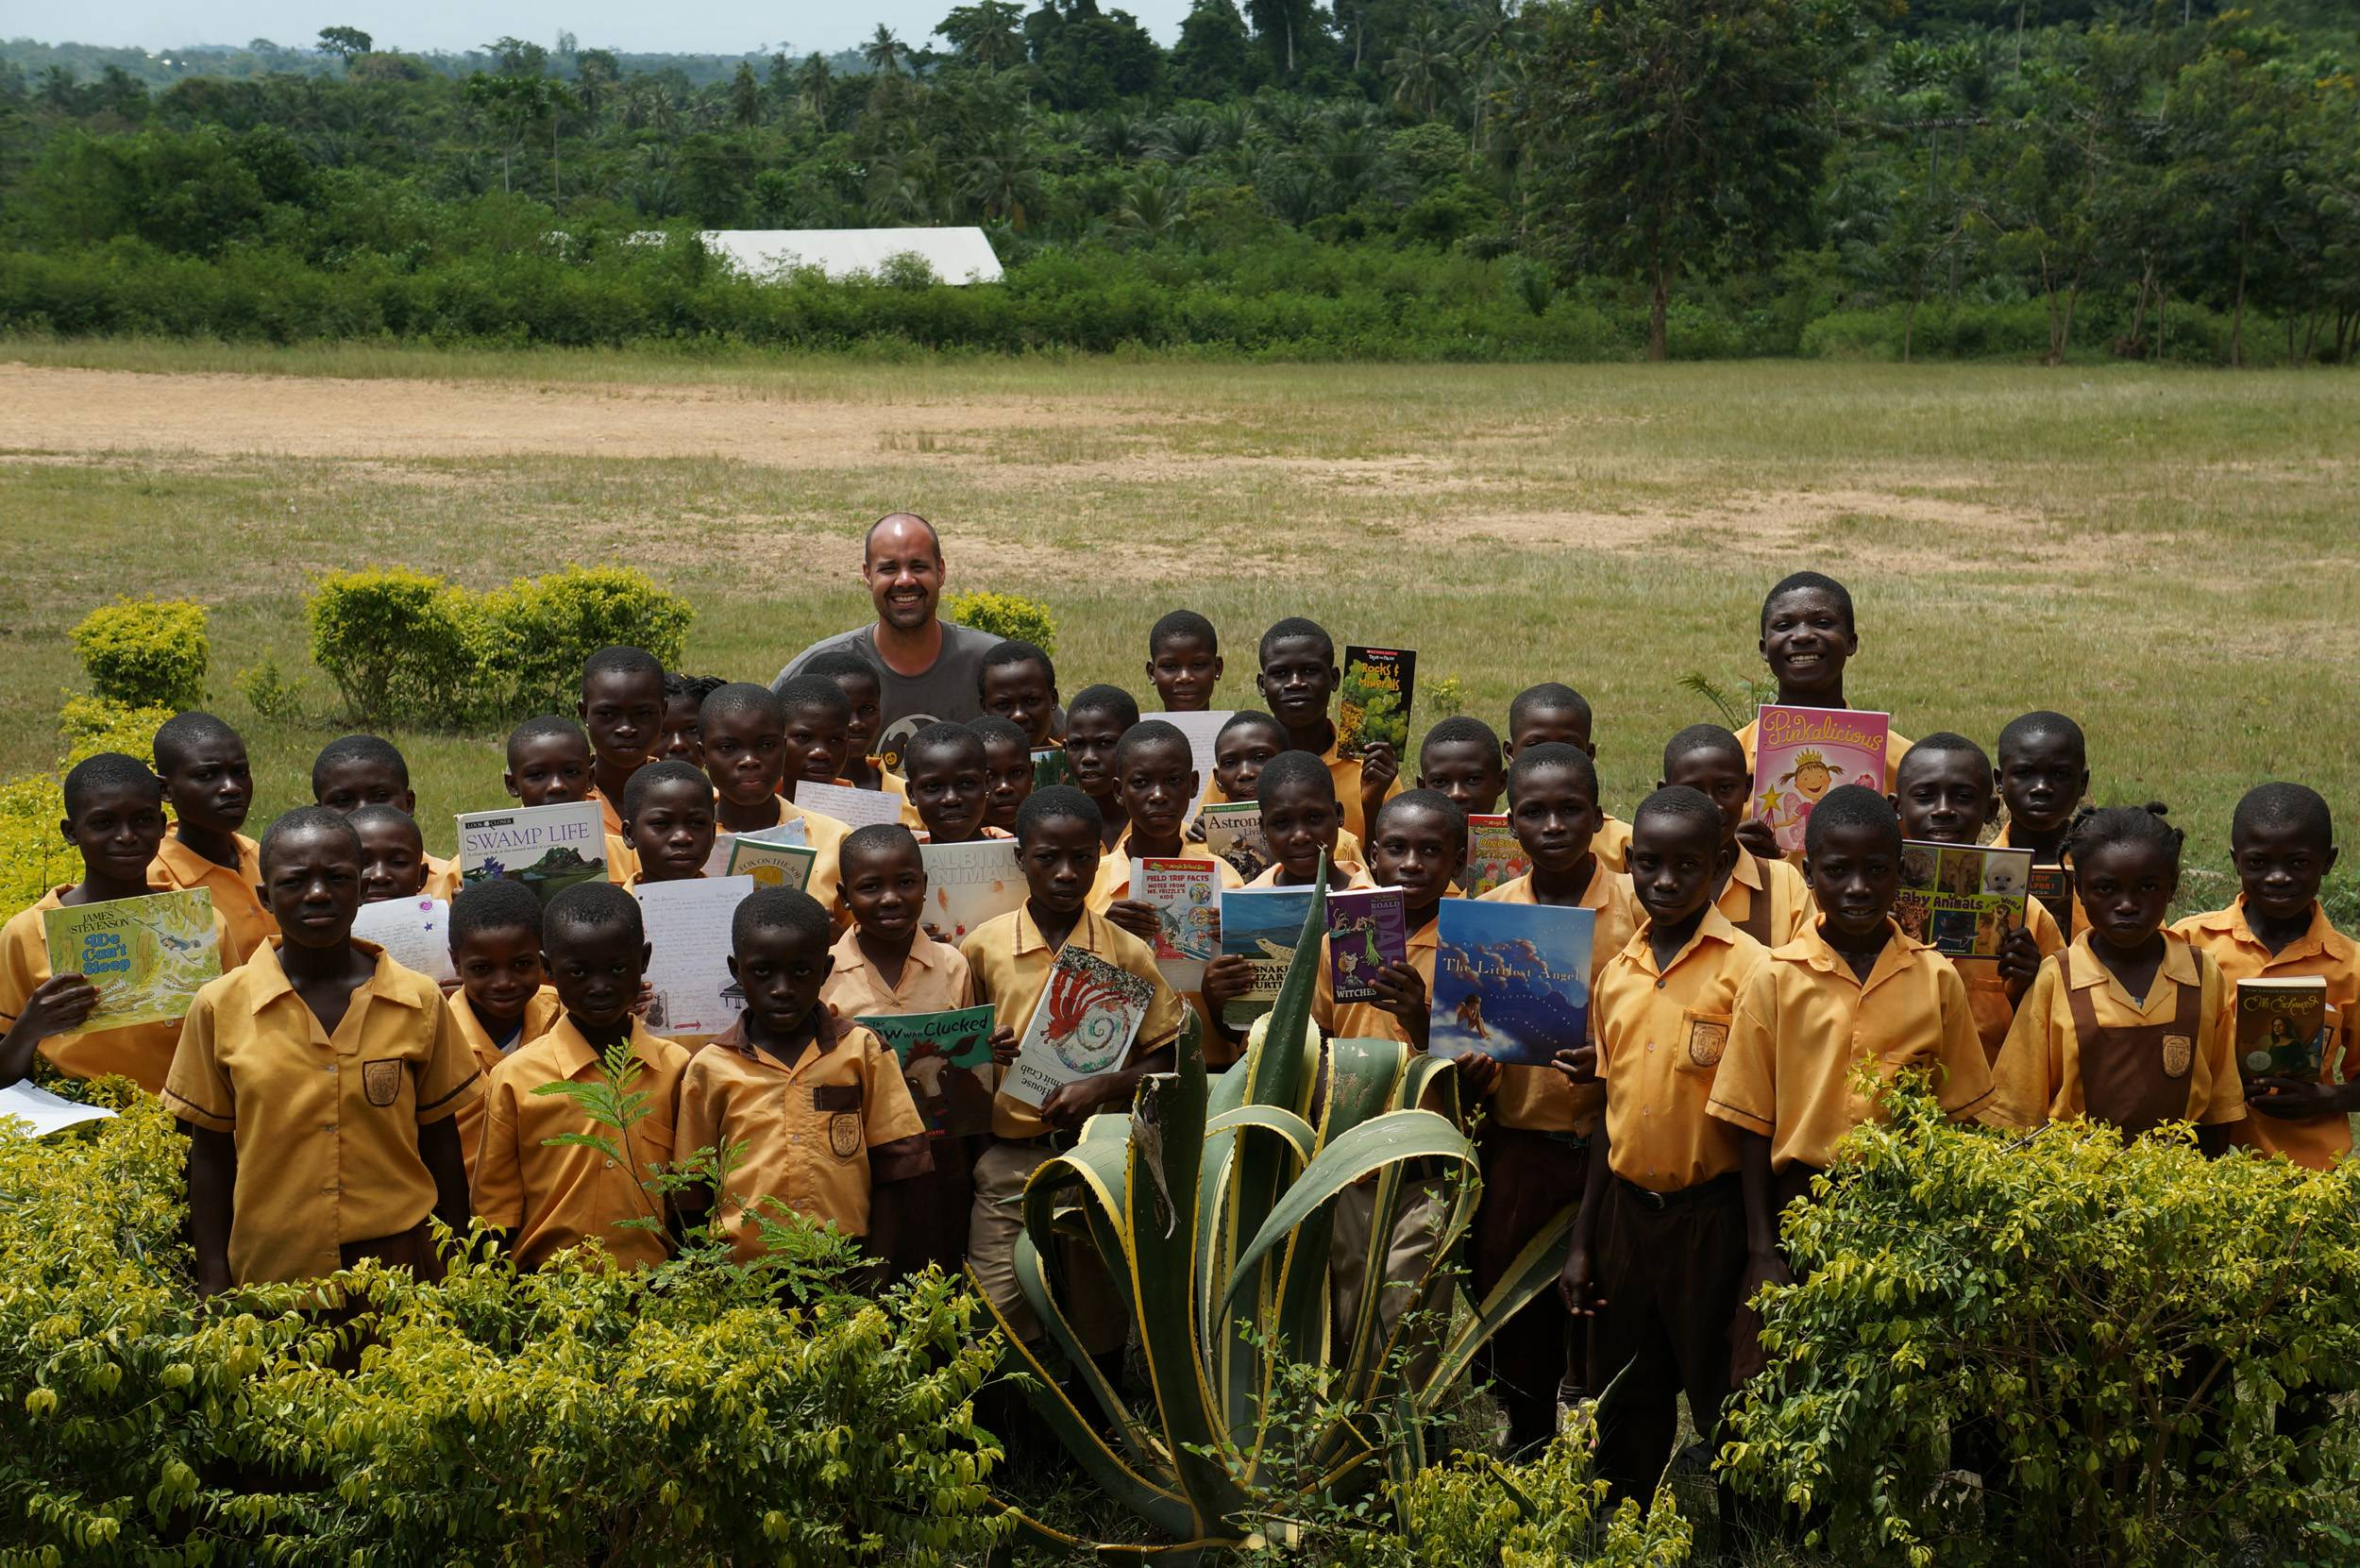 Jim Reed, a sixth-grade gifted teacher at Sycamore Trails Elementary School in Bartlett, carried hundreds of books with him to give to students at this school in Ghana.